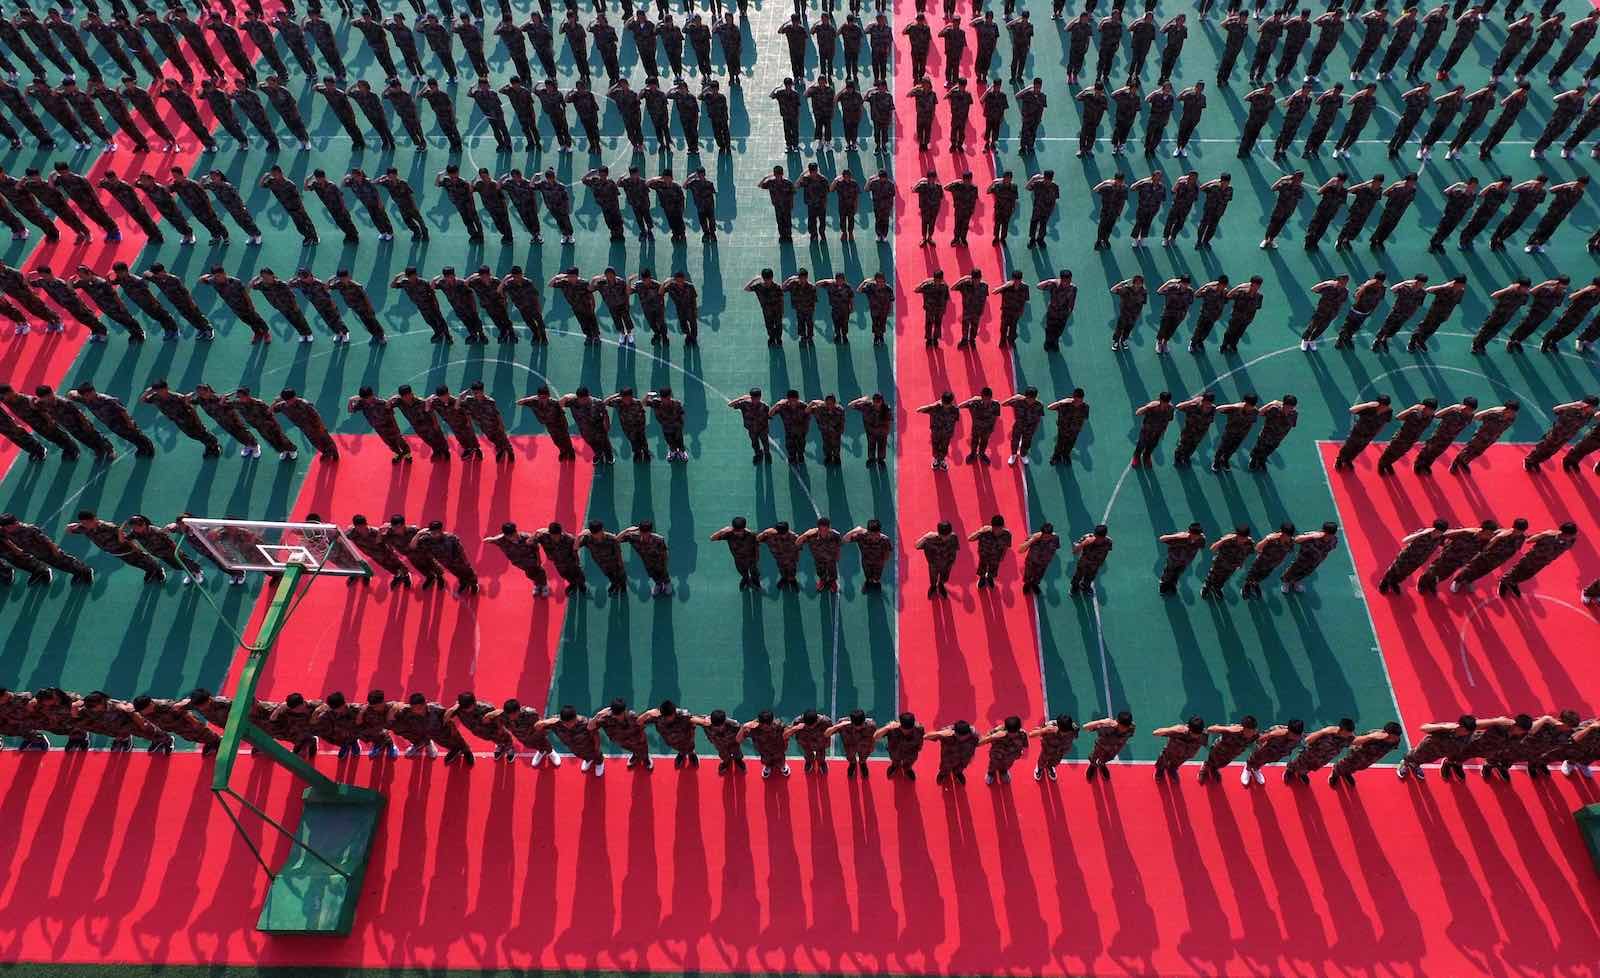 New high school students undertake a 10-day military training course at the beginning of term (Photo: VCG via Getty)